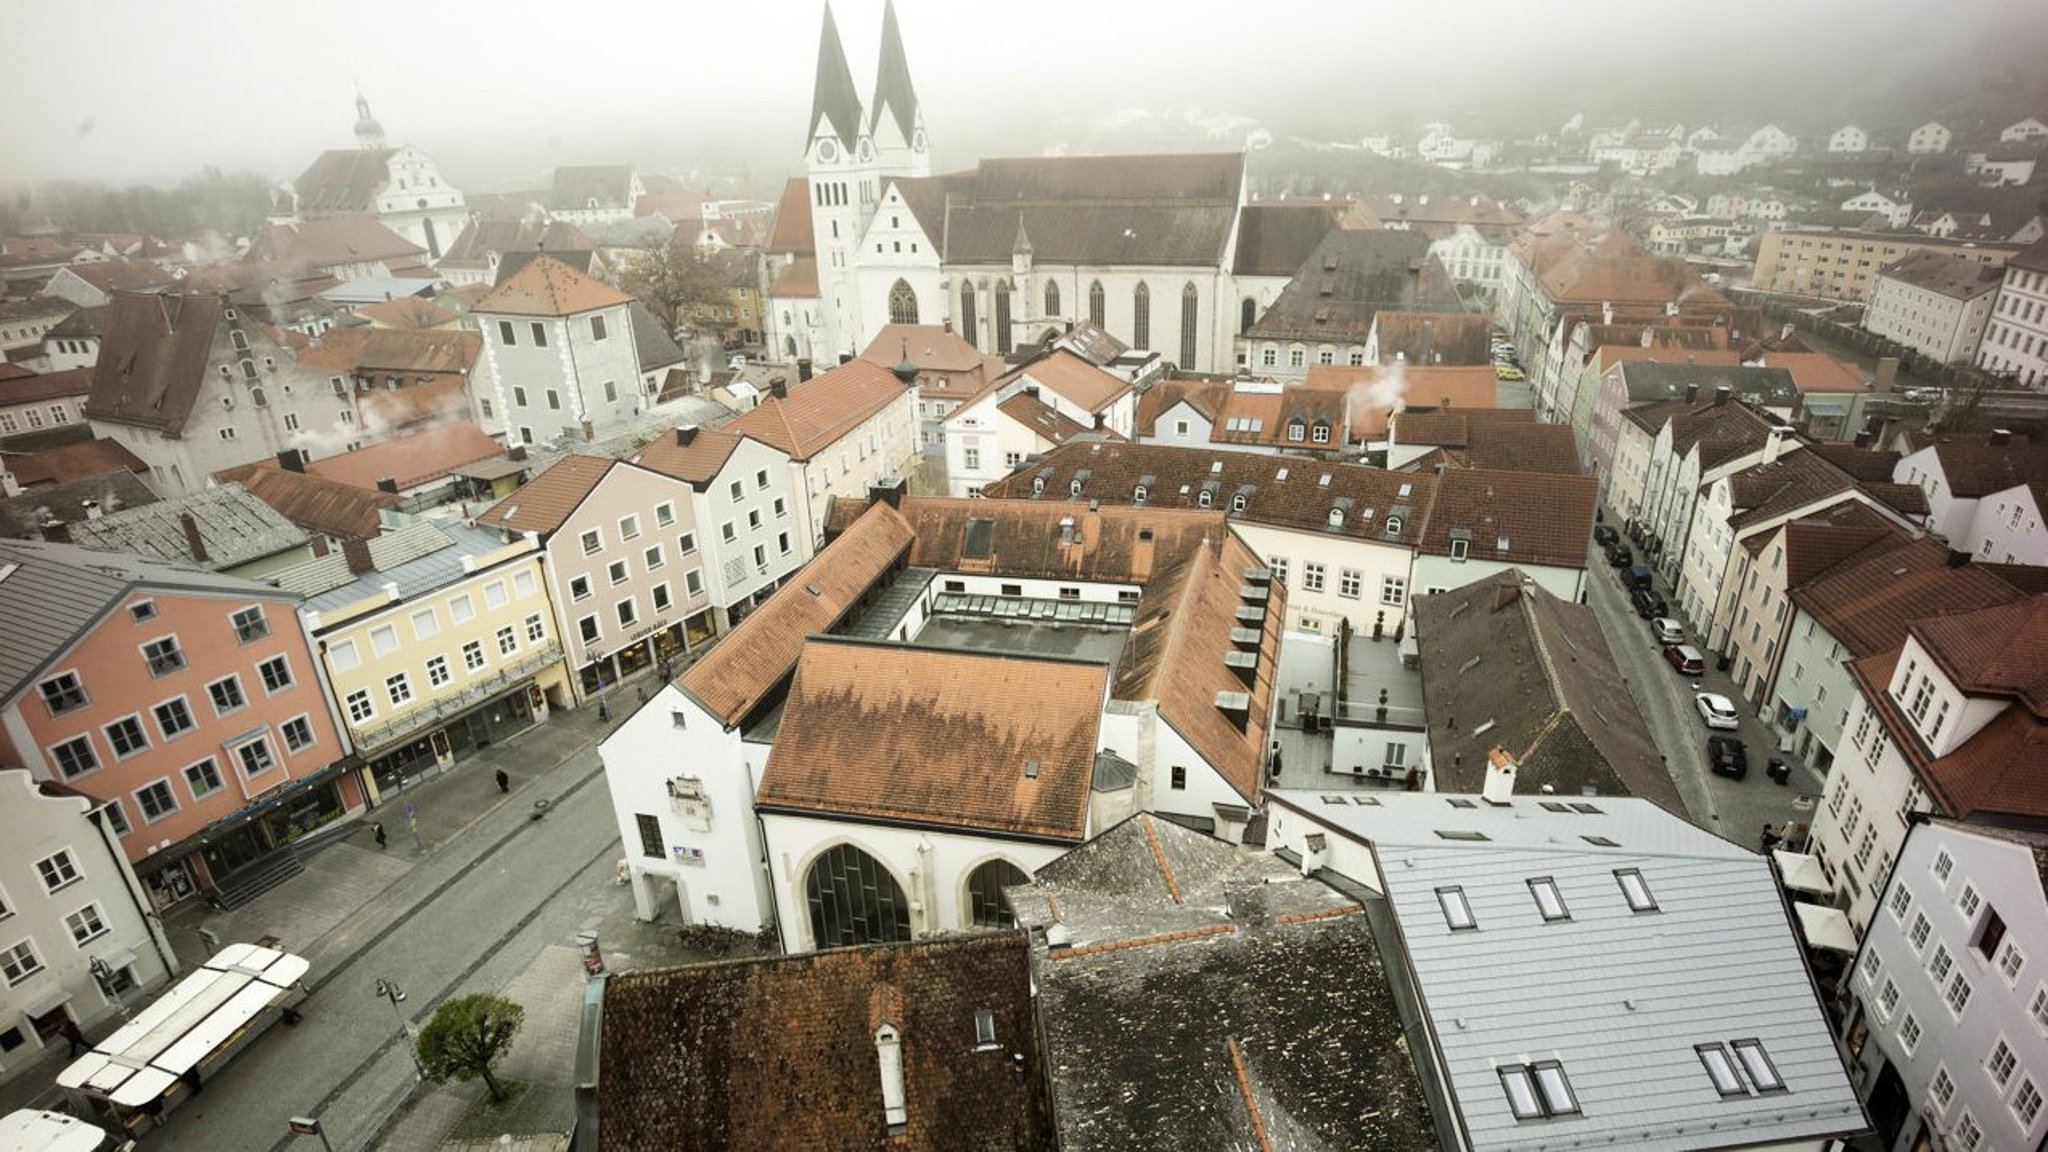 The small German town desperate for workers